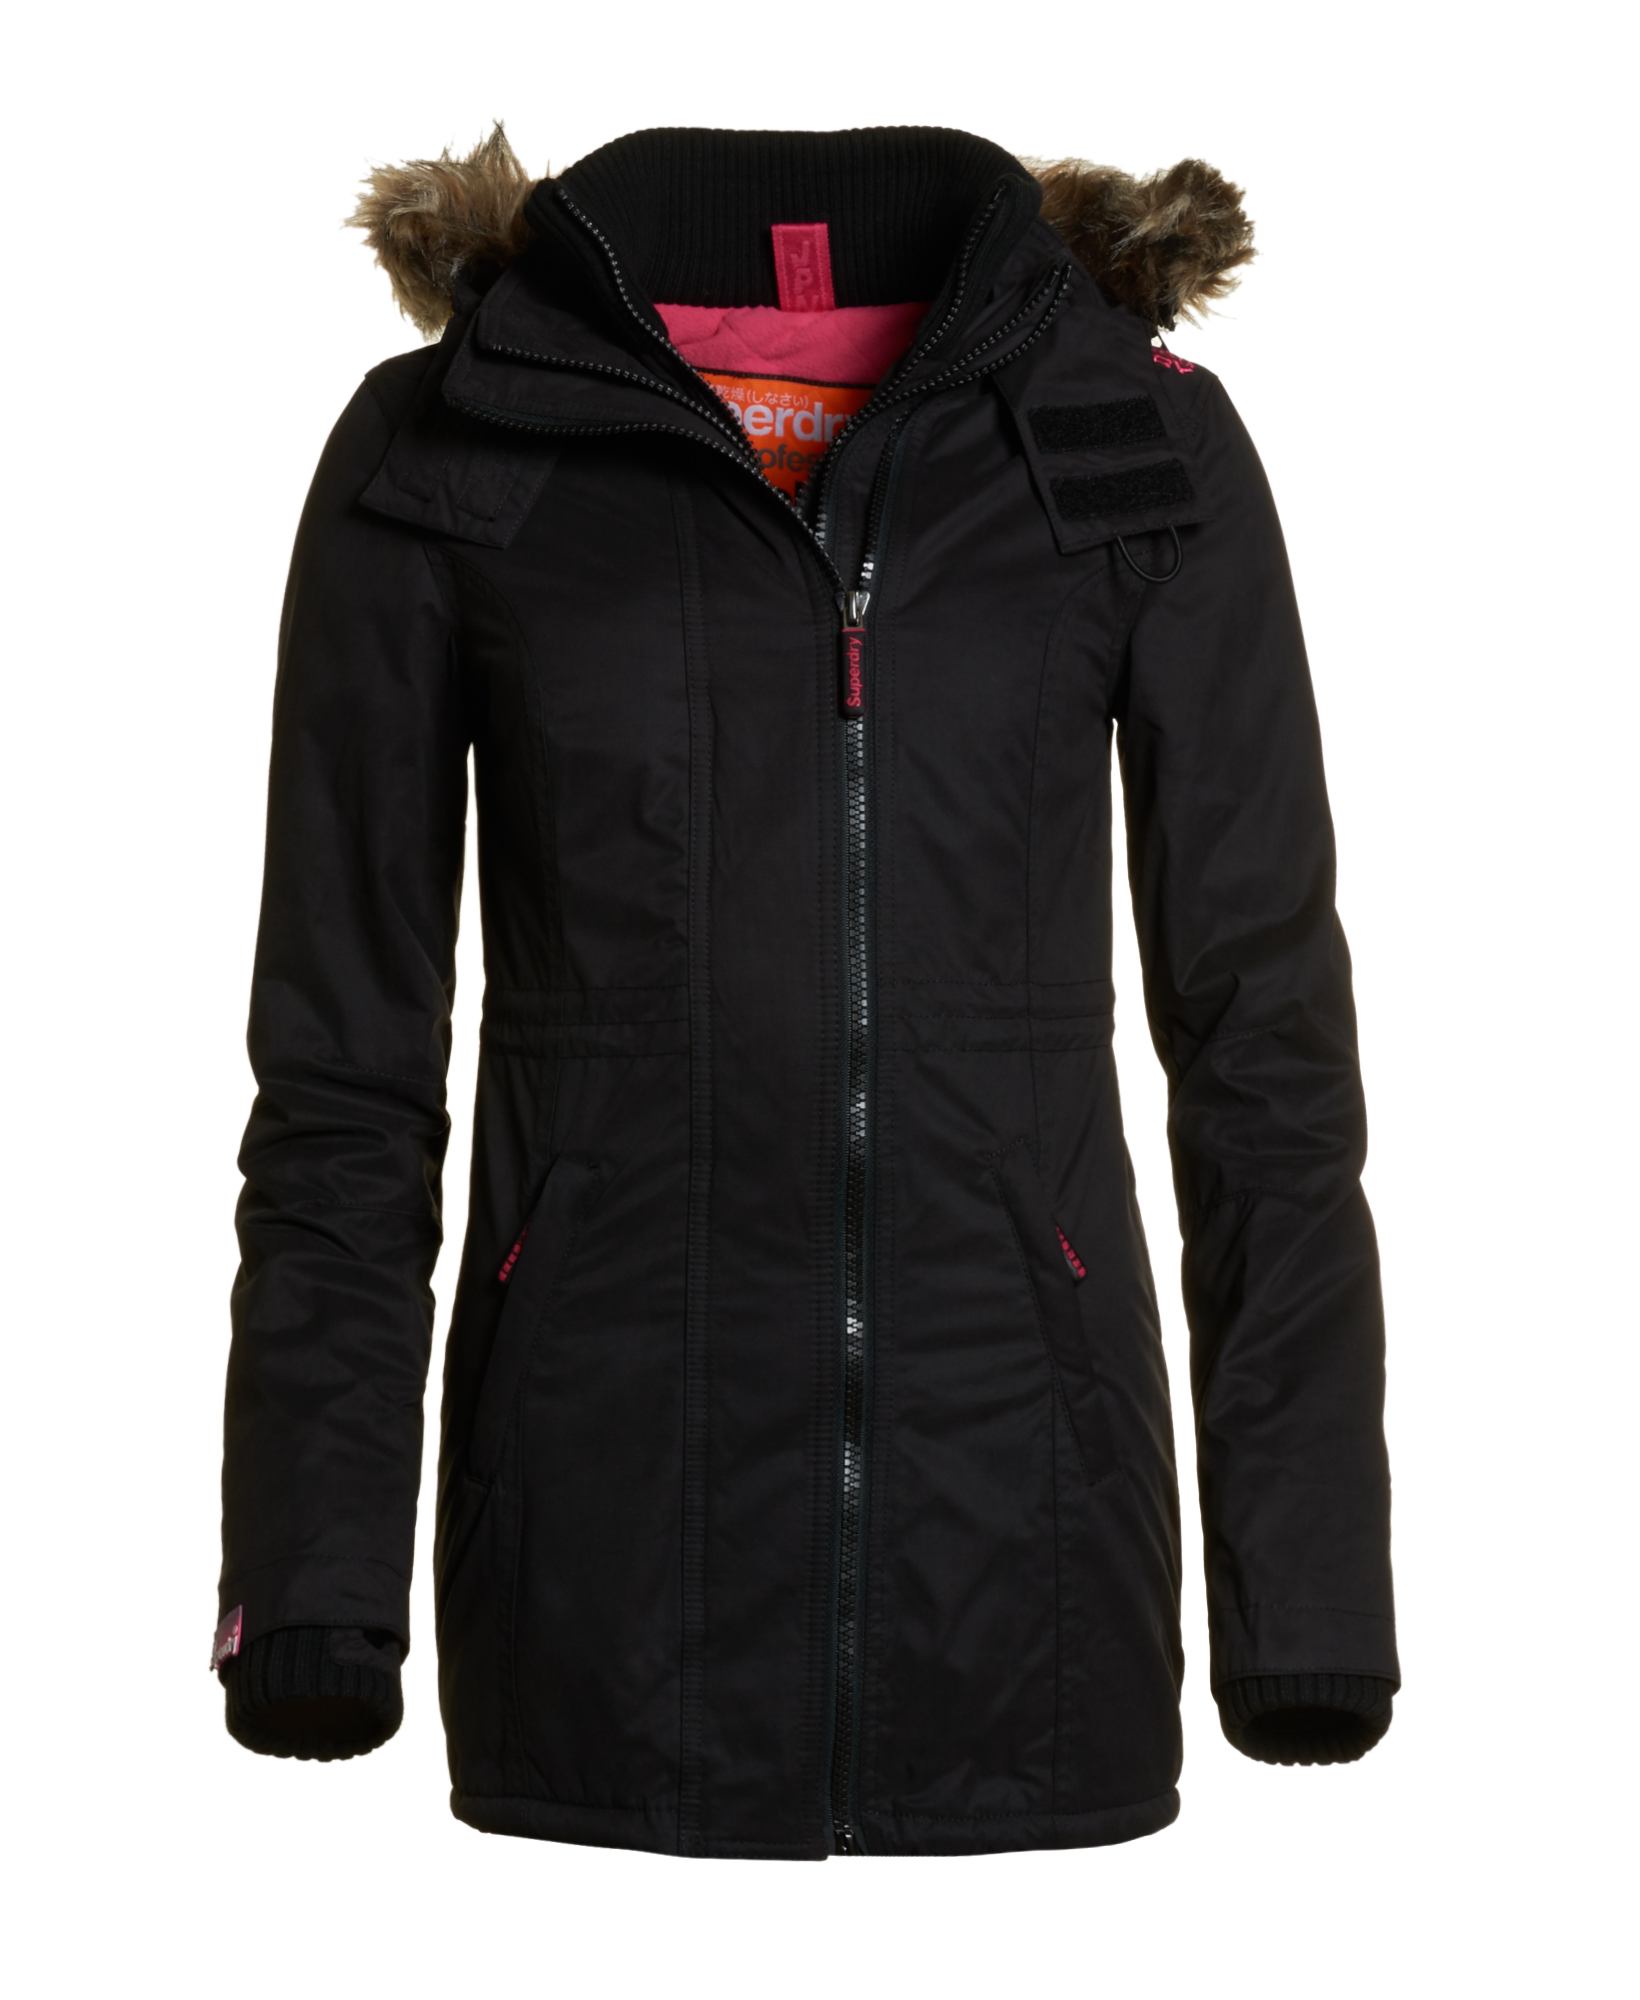 neue damen superdry jacke hooded super microfibre windcheater black ebay. Black Bedroom Furniture Sets. Home Design Ideas